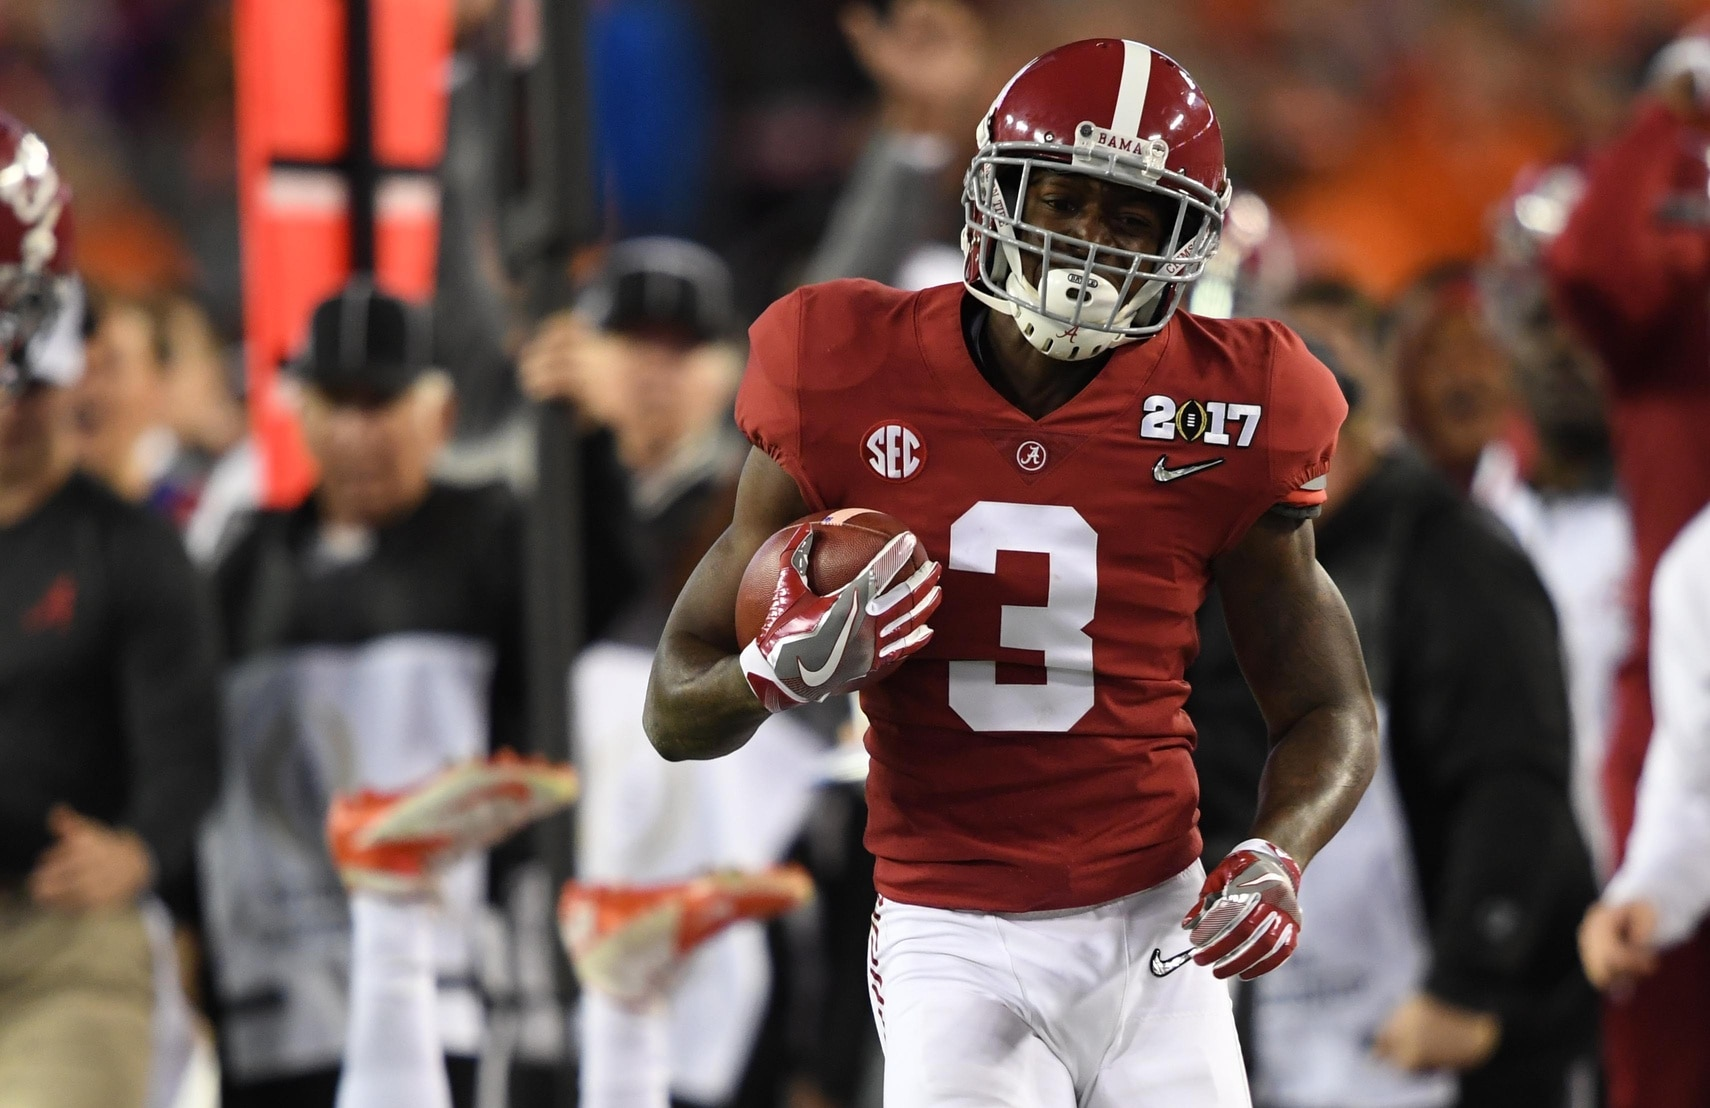 Caption: Jan 9, 2017; Tampa, FL, USA; Alabama Crimson Tide wide receiver Calvin Ridley (3) runs the ball during the second quarter against the Clemson Tigers in the 2017 College Football Playoff National Championship Game at Raymond James Stadium. Mandatory Credit: John David Mercer-USA TODAY Sports